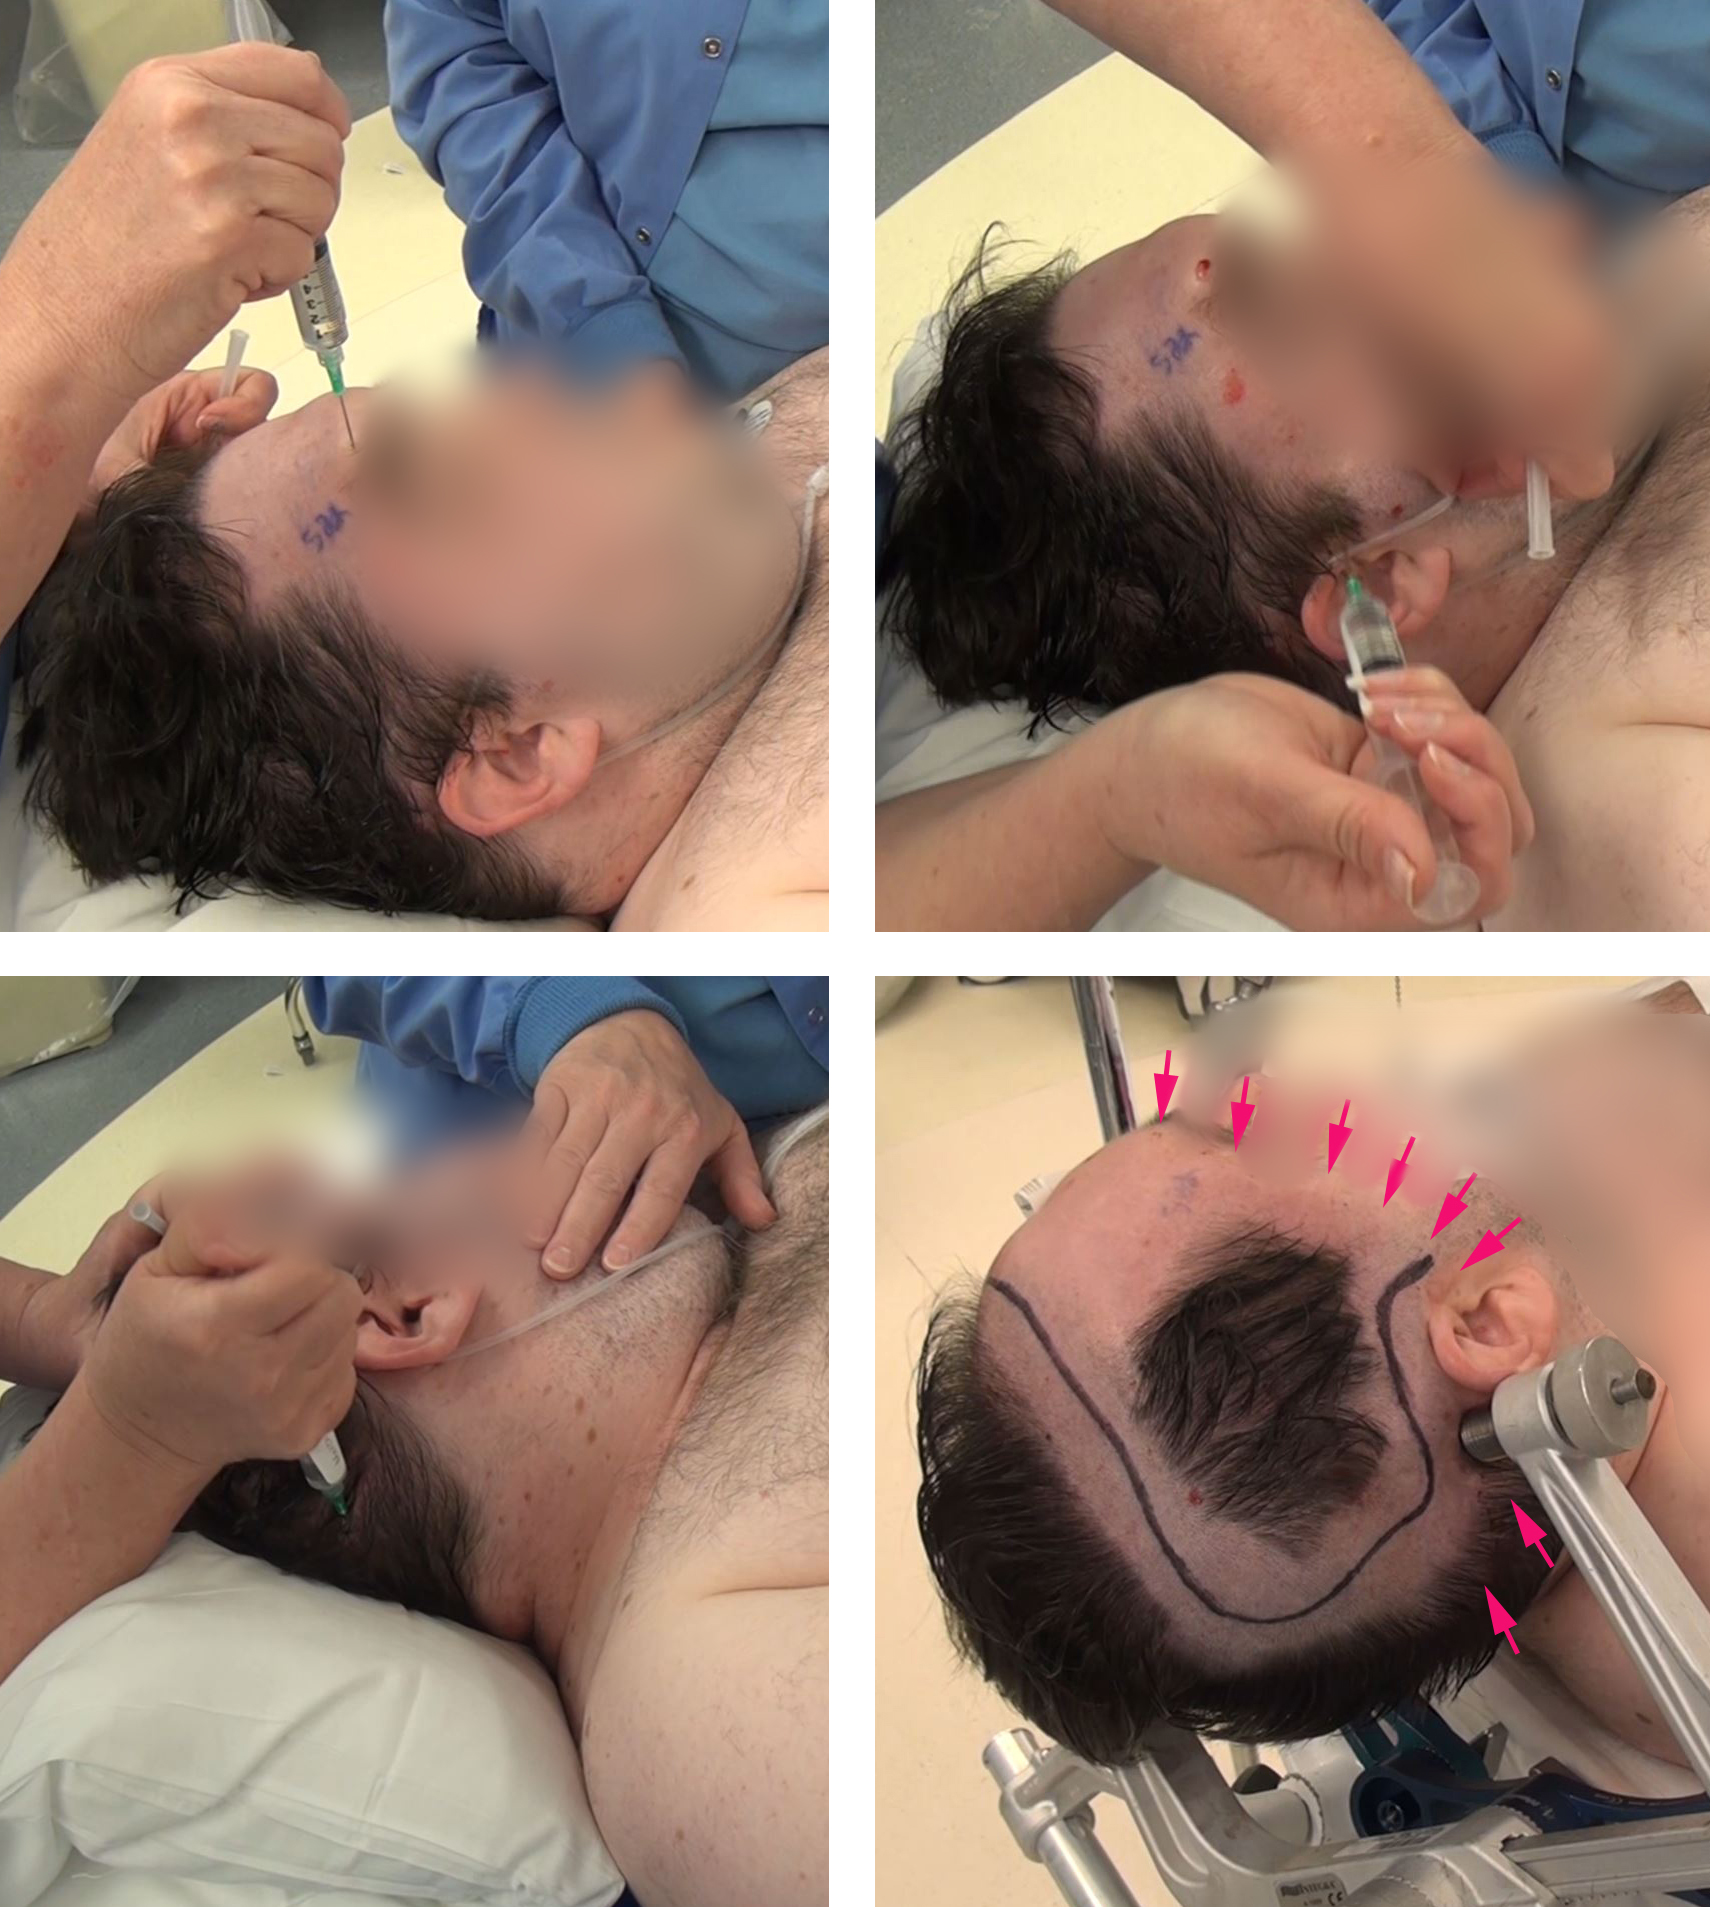 Figure 6: I use local and regional scalp anesthesia/block generously before placement of the skull clamp. The major nerve trunks supplying the ipsilateral scalp are blocked. Using generous amounts of local anesthetic (lidocaine 0.5% and Marcaine 0.25%,) I block the supratrochlear, supraorbital, auriculotemporal, and greater and lesser occipital nerves. The sites of injection for the regional scalp block are marked in red arrows (right lower image).    A copious amount of local anesthetic is also used along the planned line of incision and pin sites. The patient may also be sedated using dexmedetomidine throughout this process.